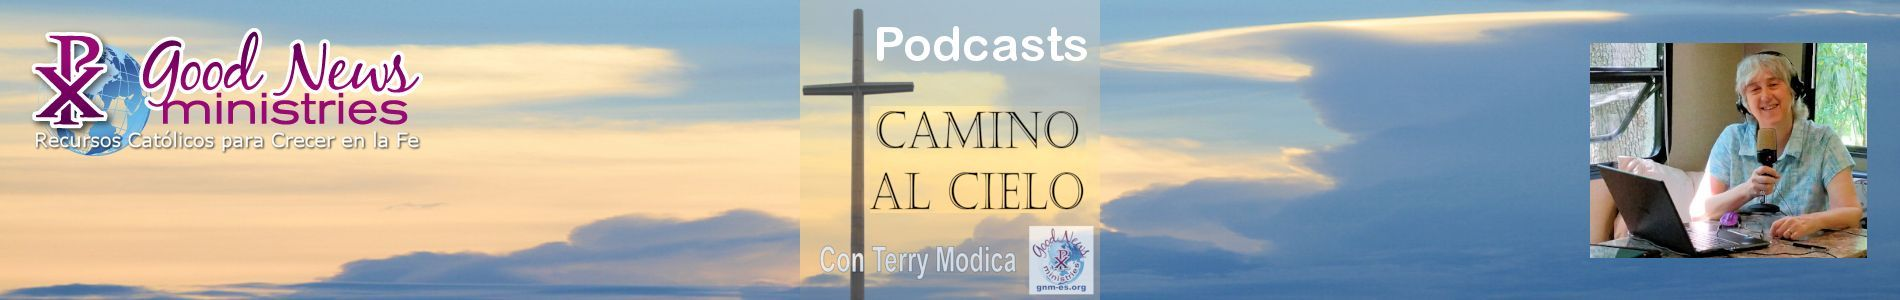 Camino al Cielo podcasts